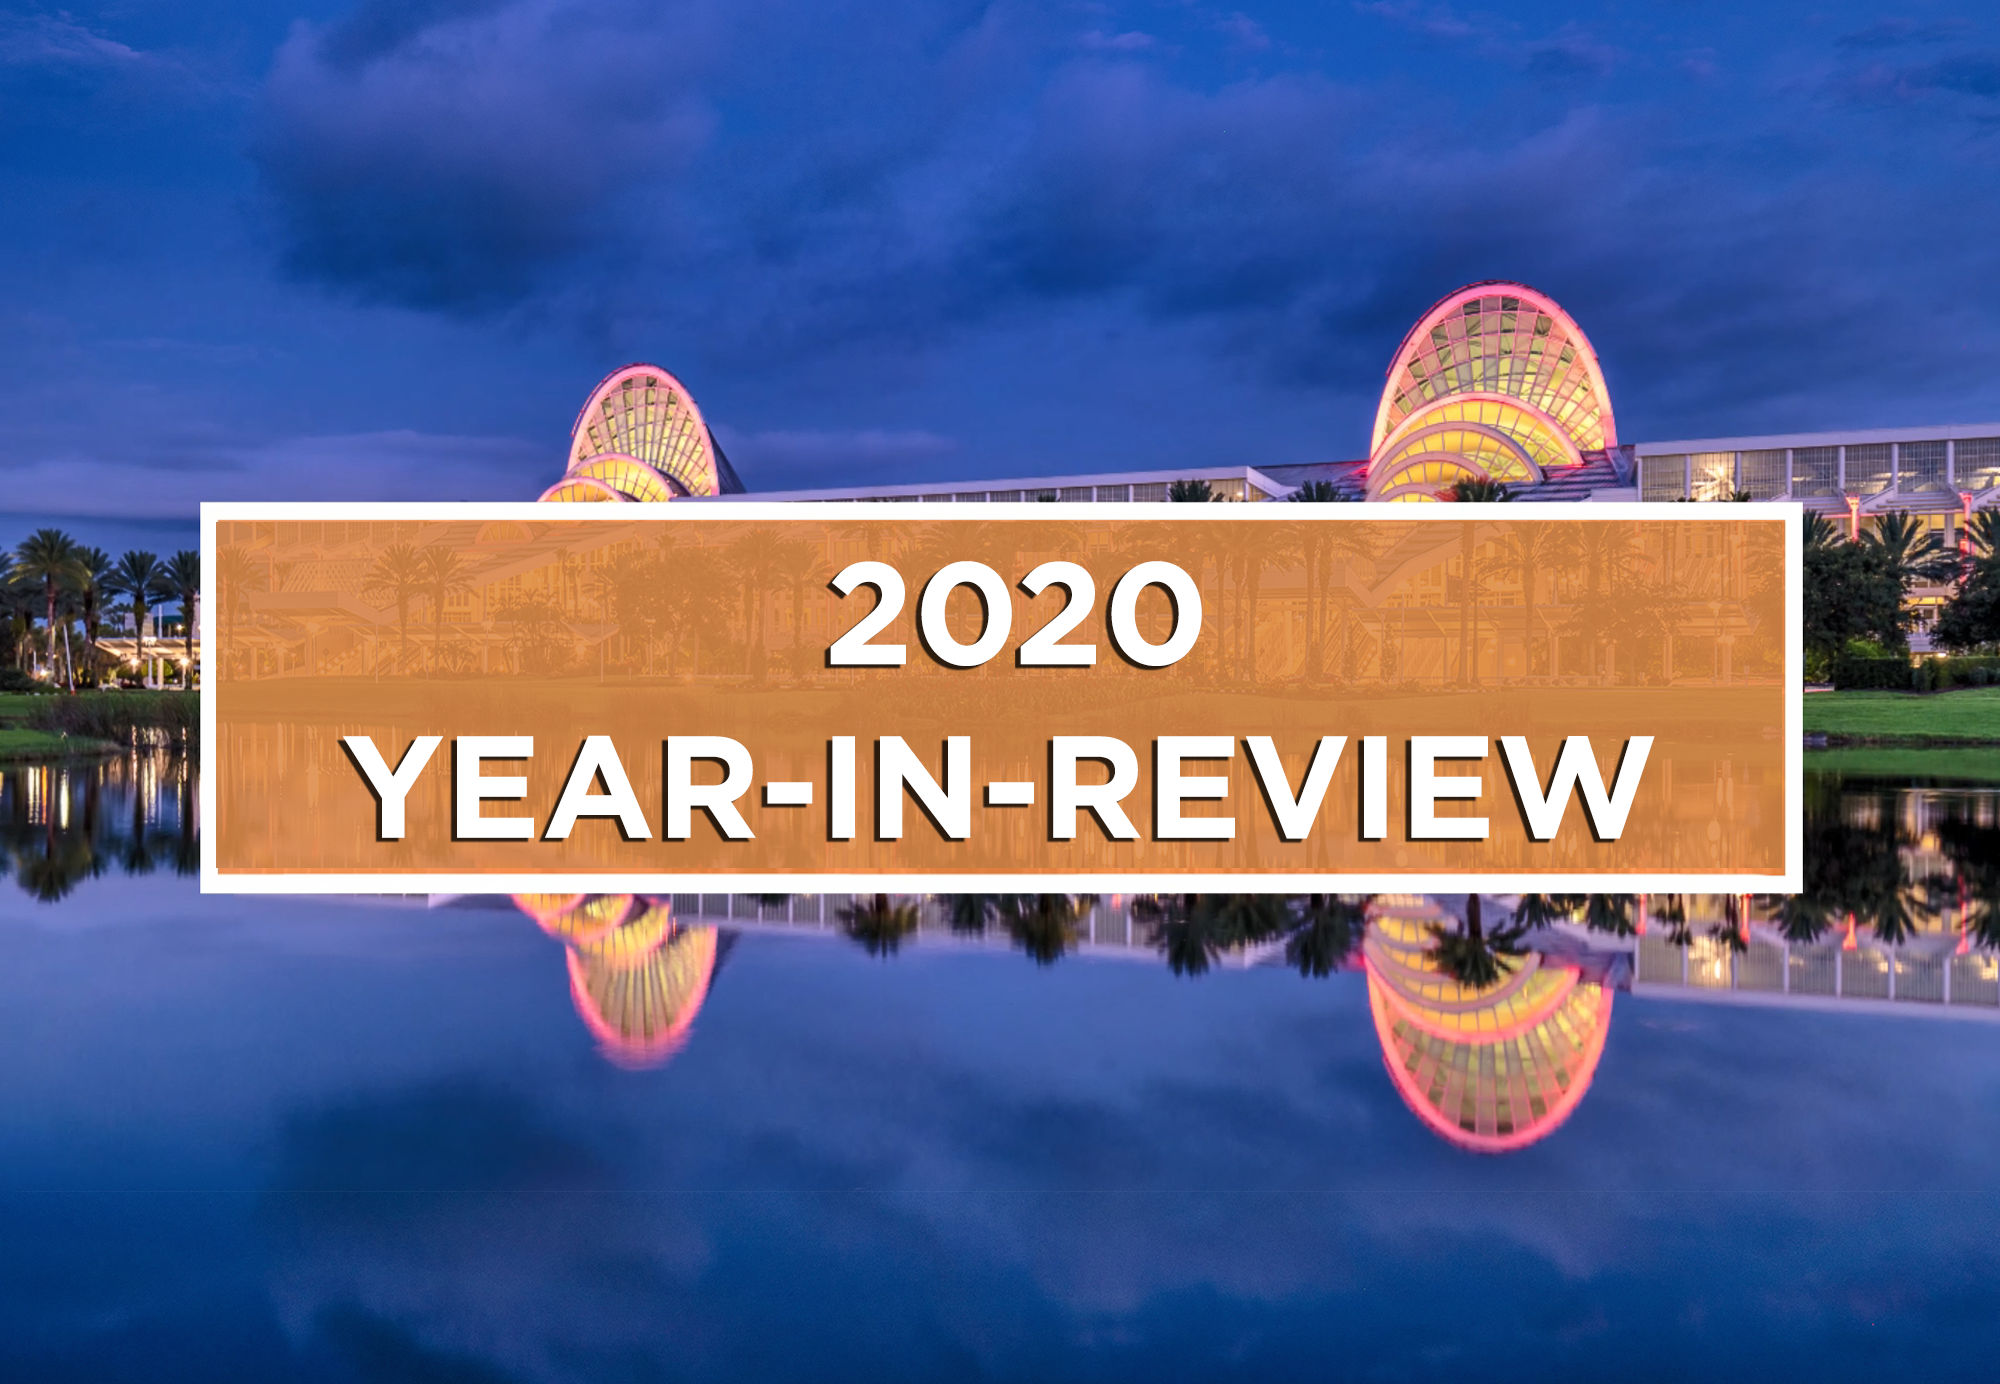 2020 Year-in-Review video